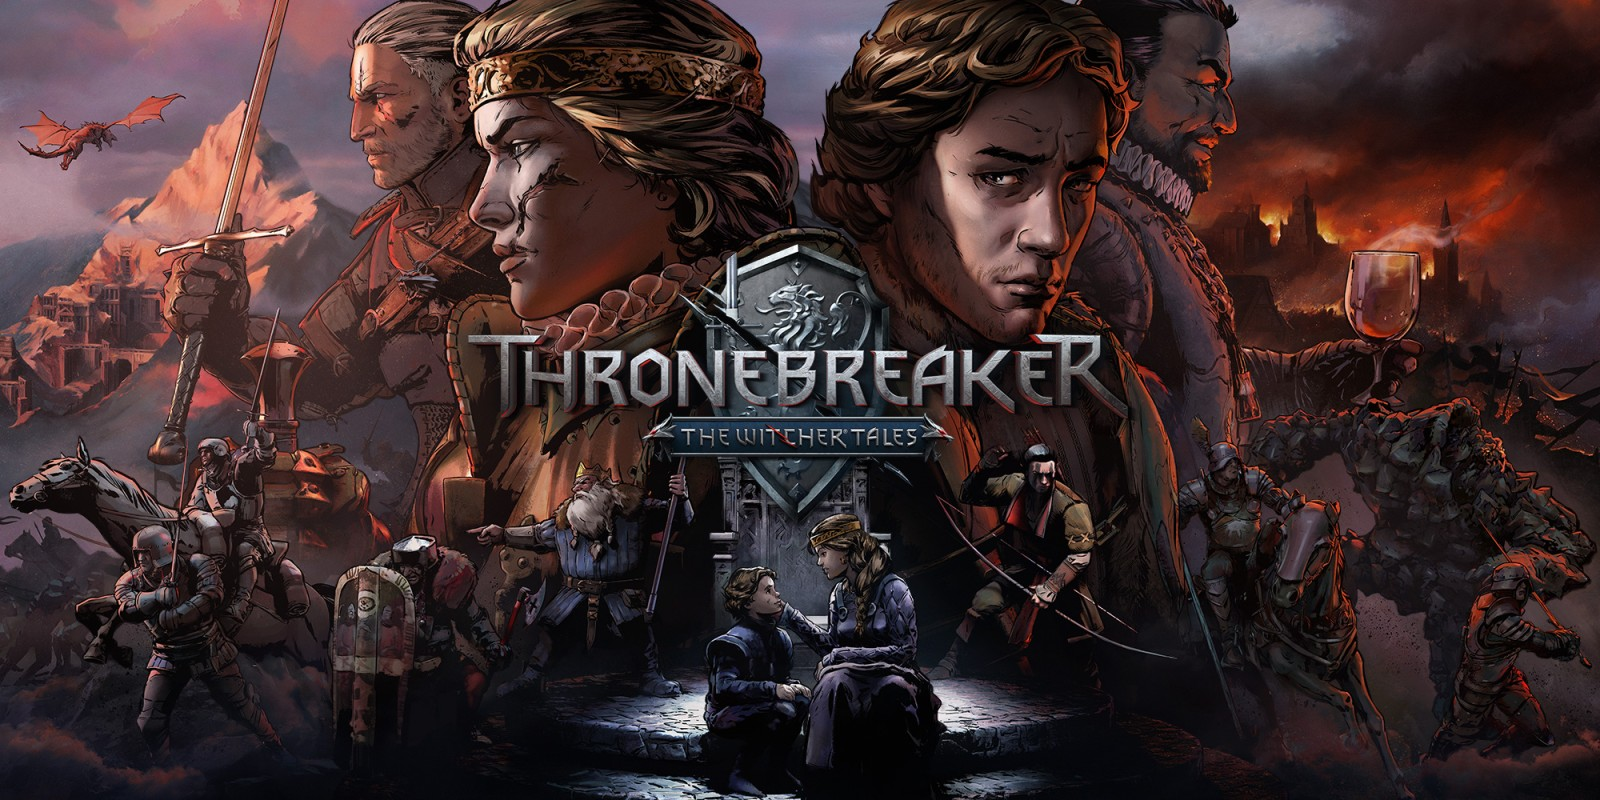 Thronebreaker: The Witcher Tales Has Made Its Way Onto The Nintendo Switch, A Surpise Port Bringing Another Witcher Title Onto The Portable Console